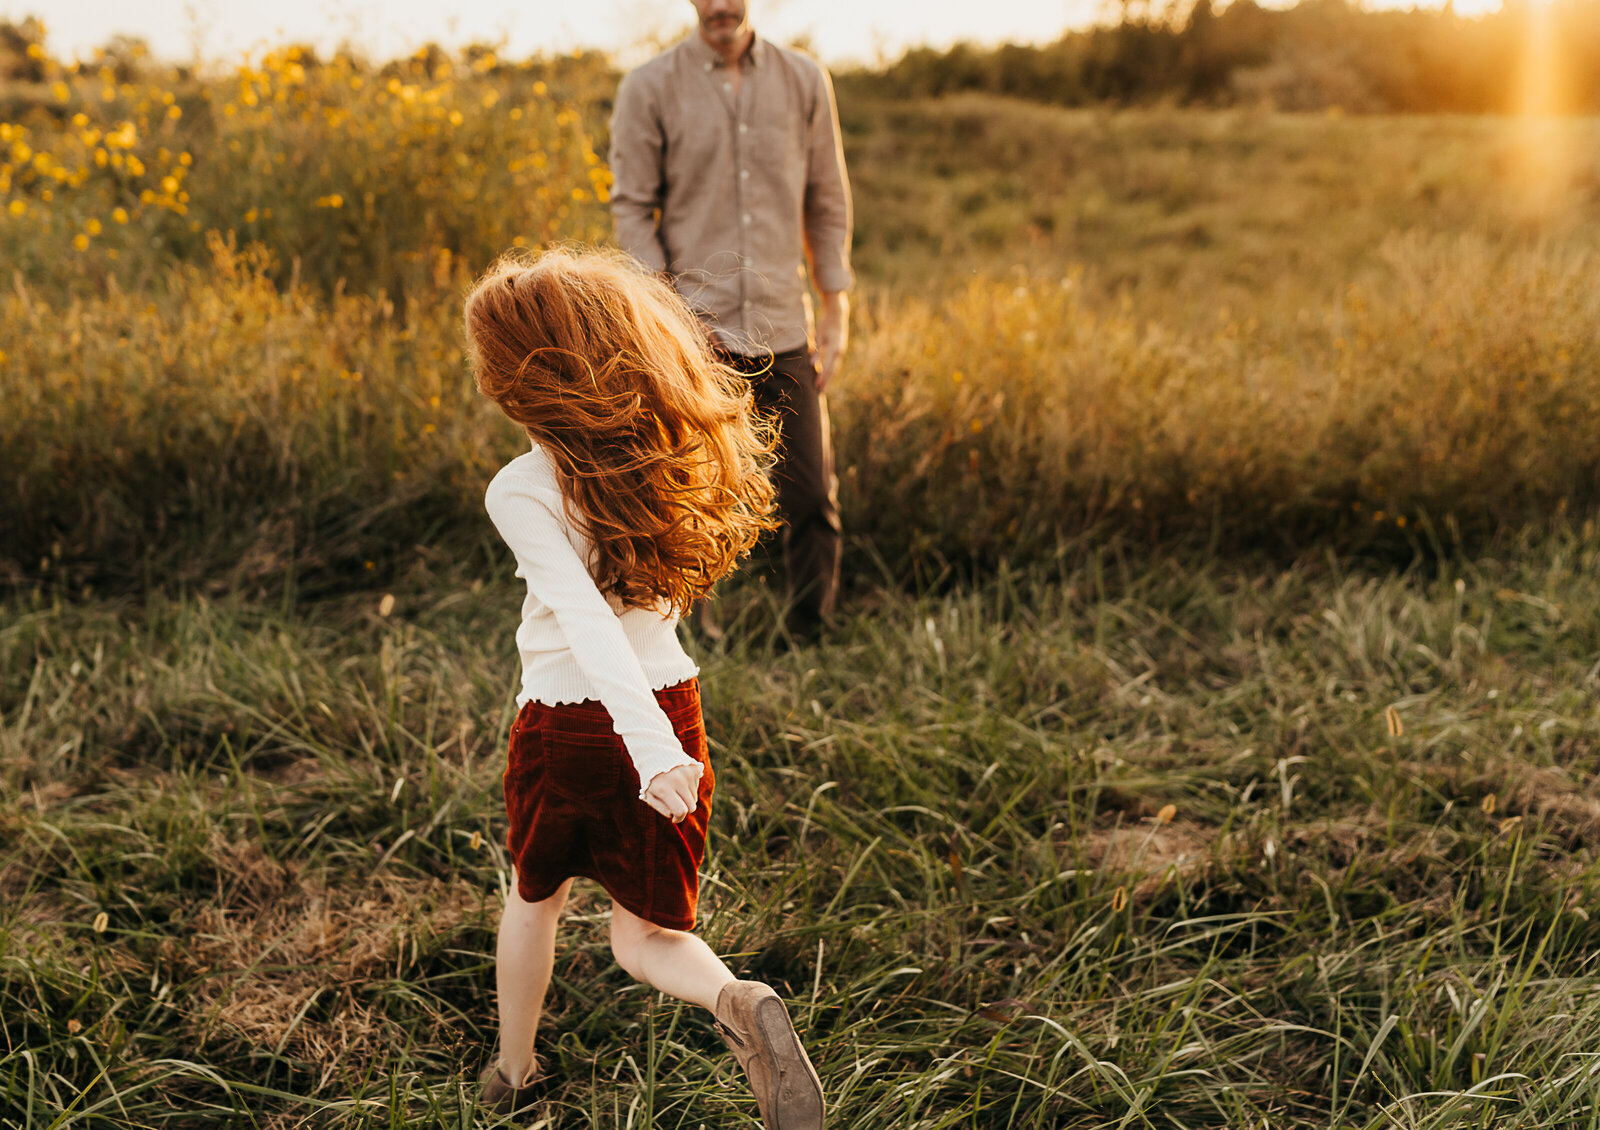 girl with red hair running through a field